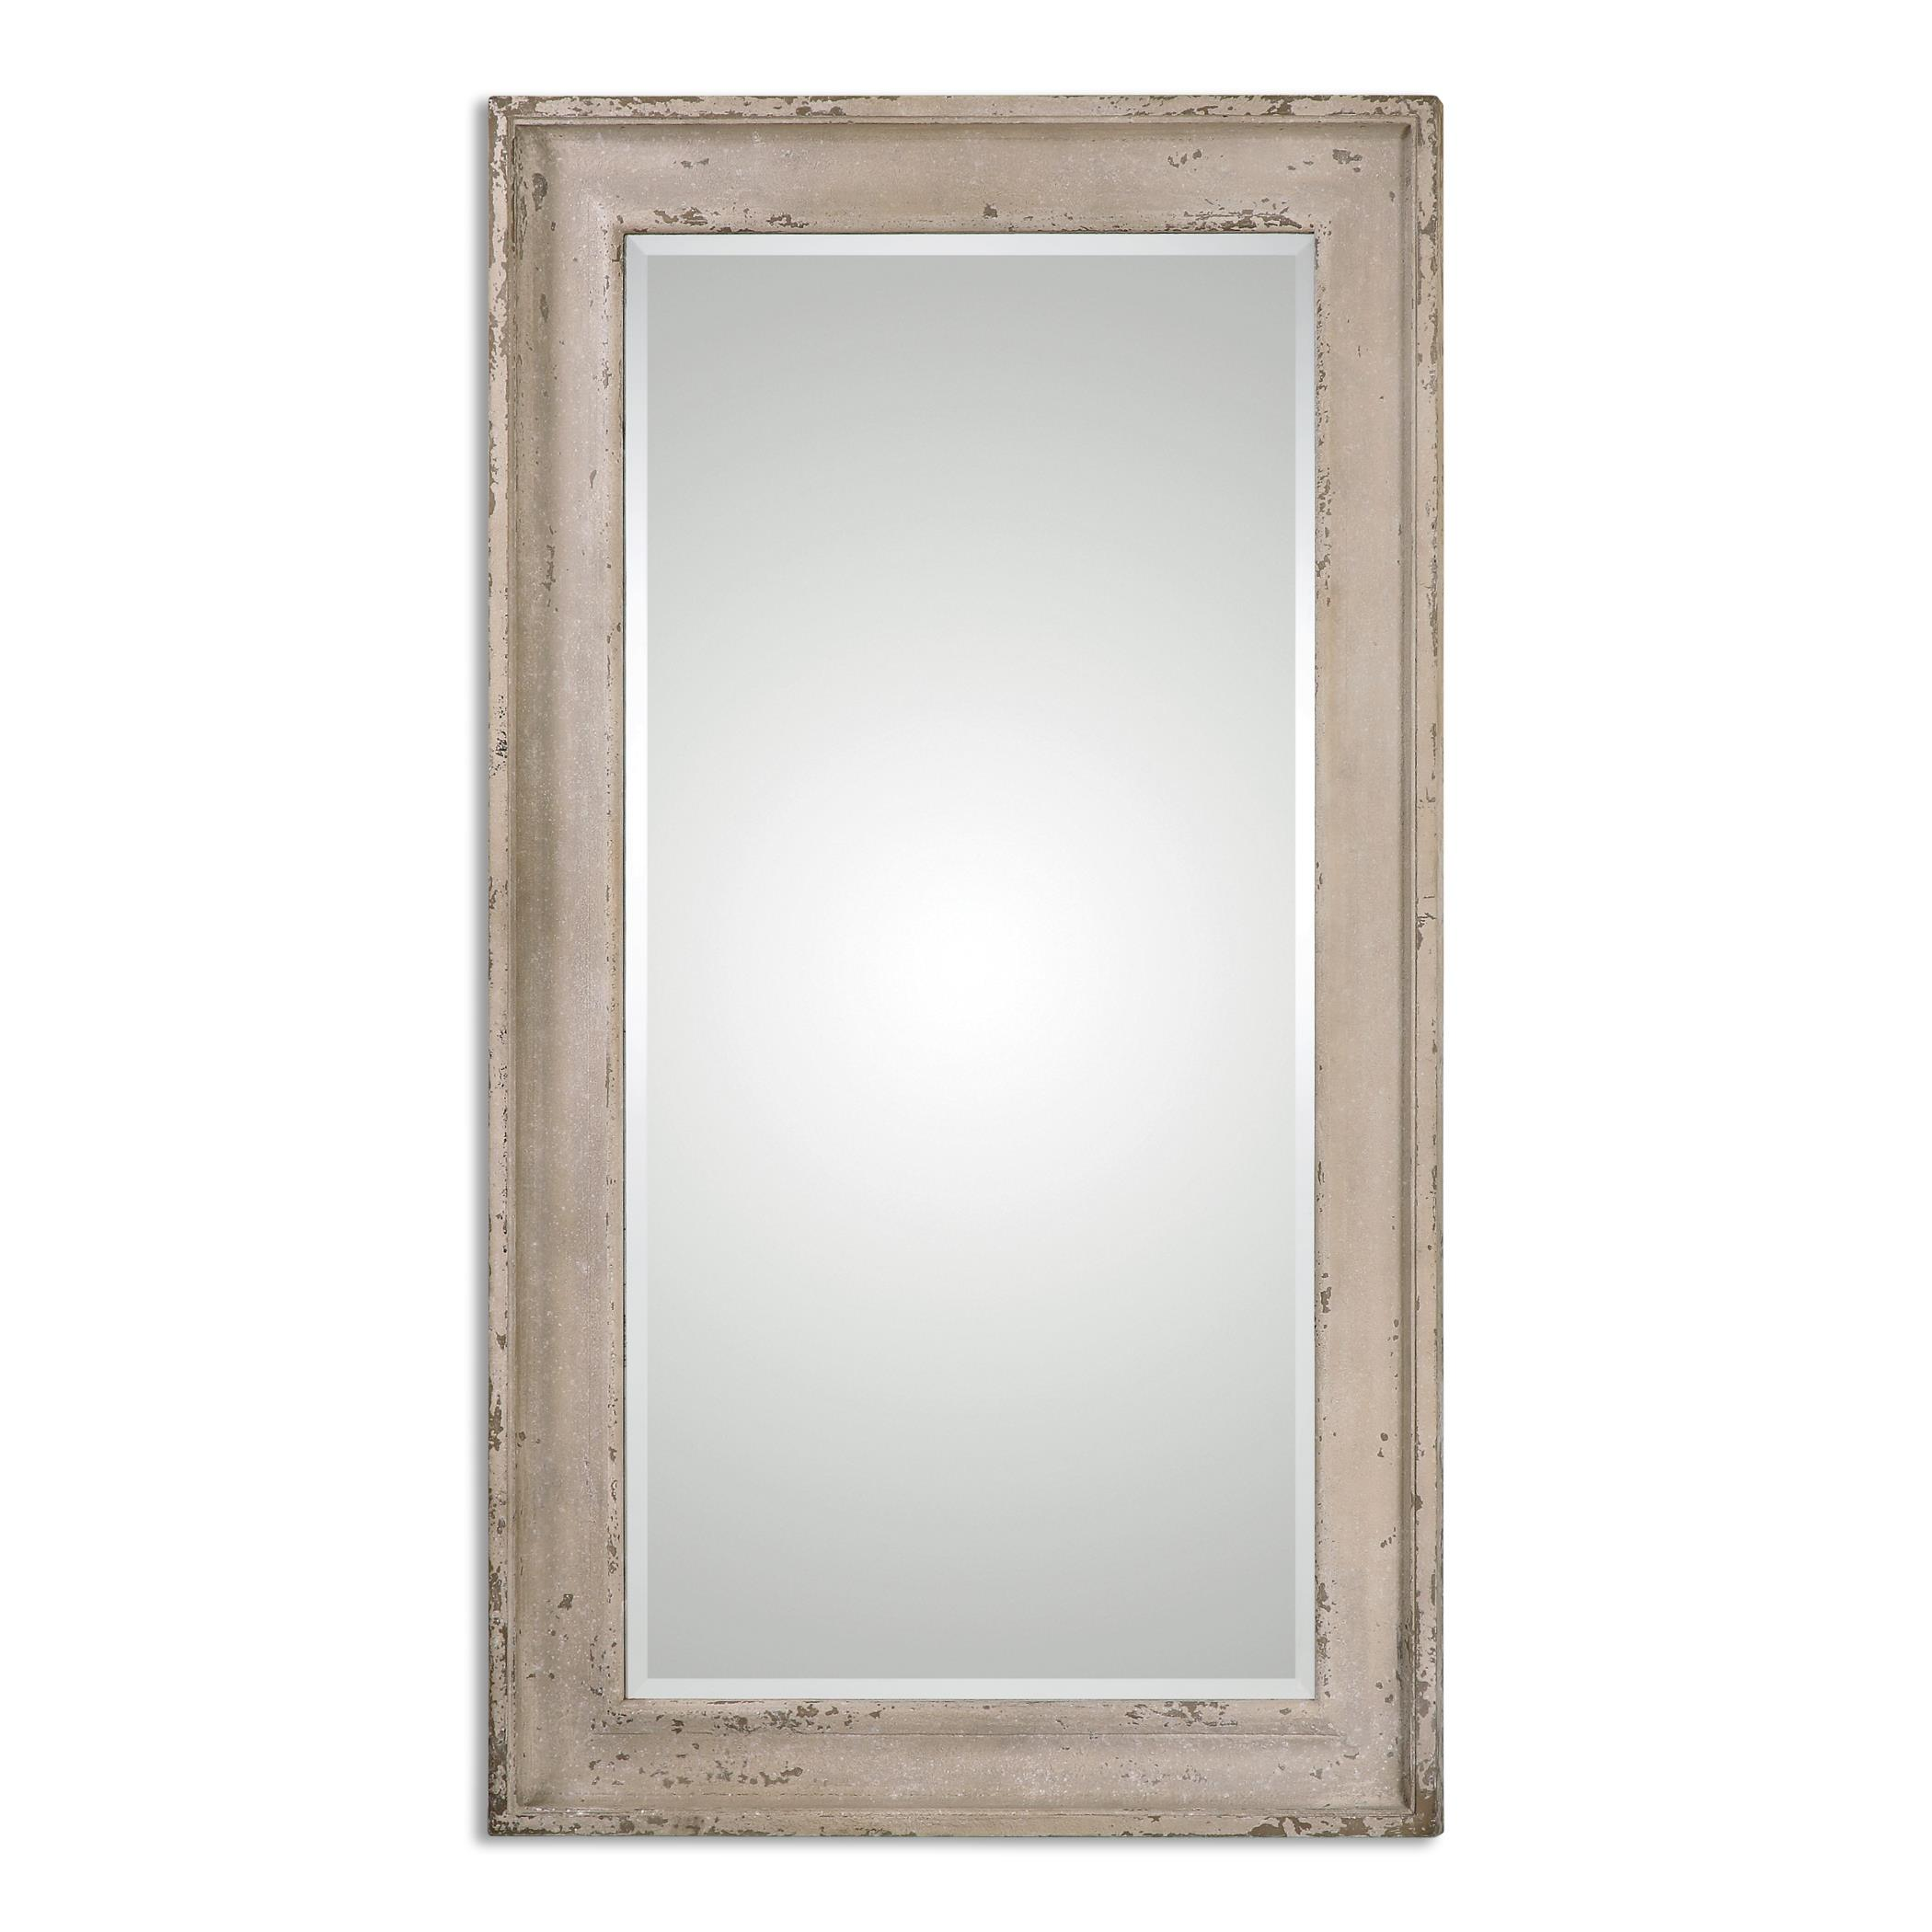 Uttermost Mirrors Alano Antiqued Leaner Mirror - Item Number: 13908